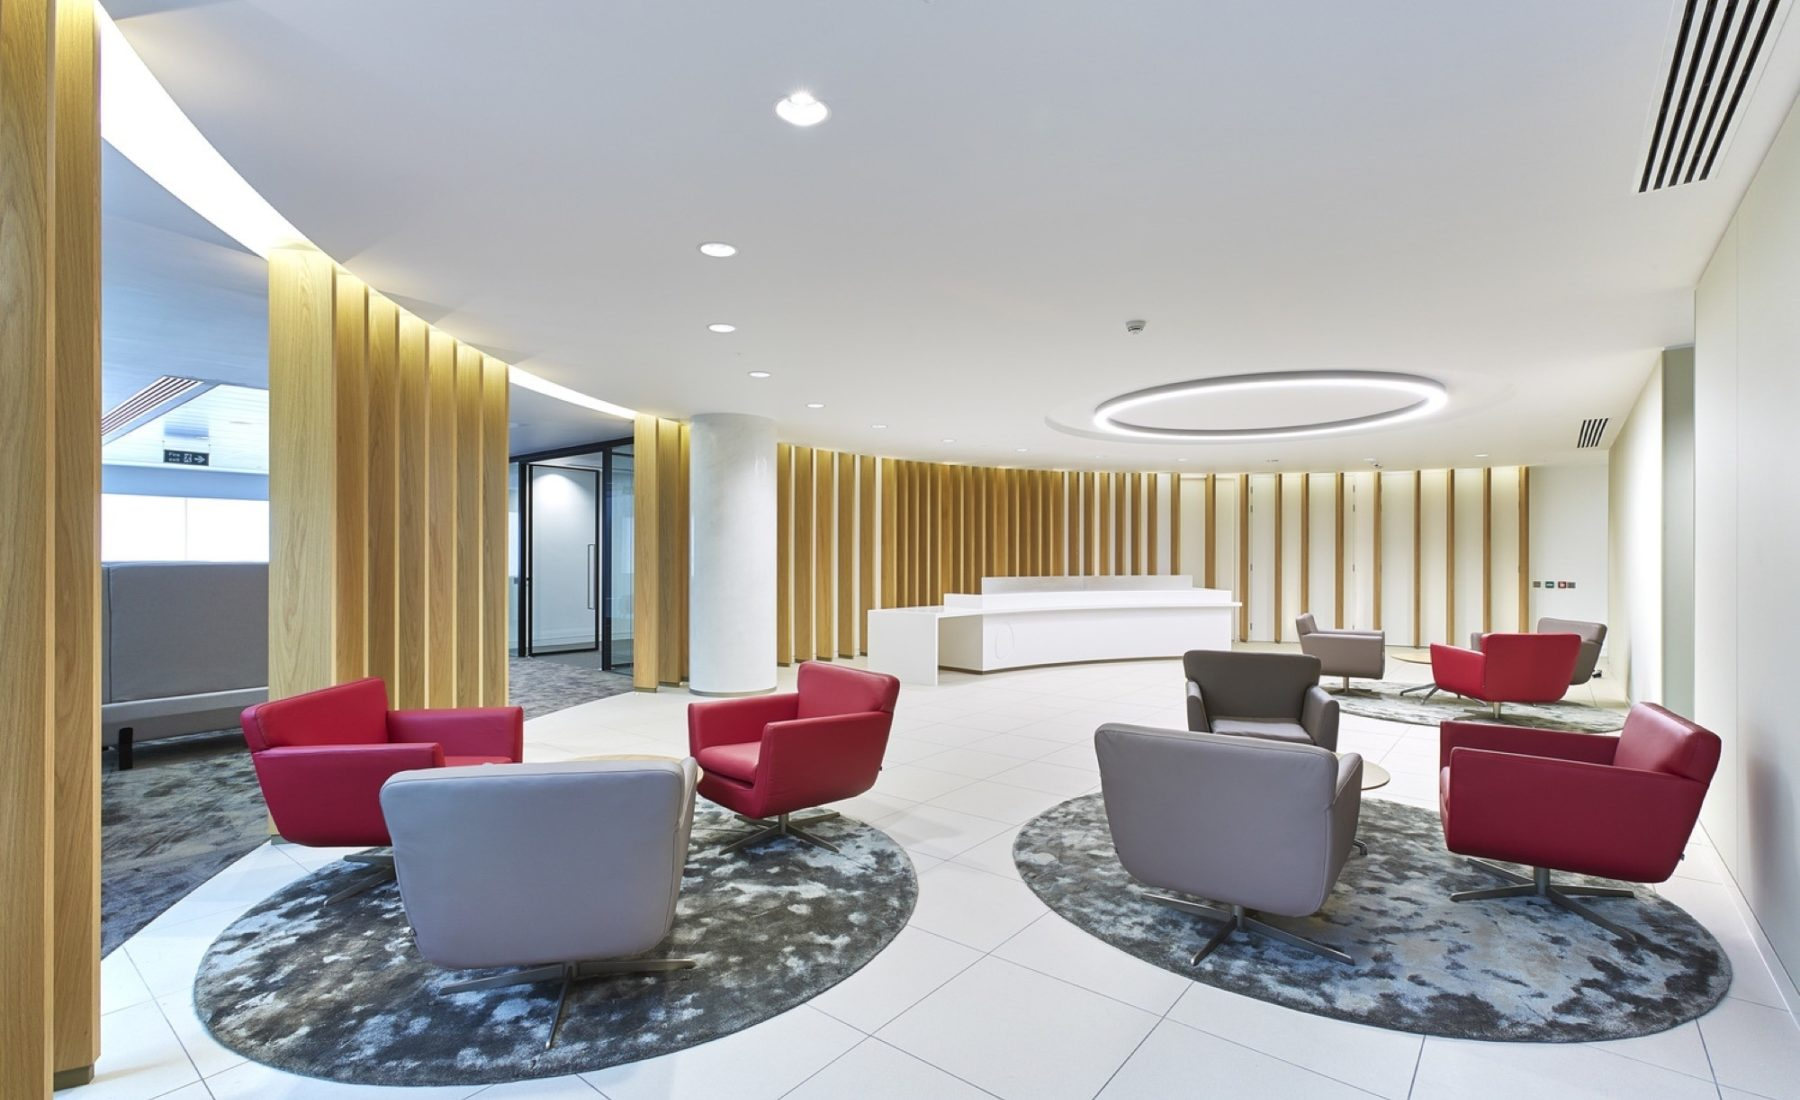 Pinsent Masons interior fit out